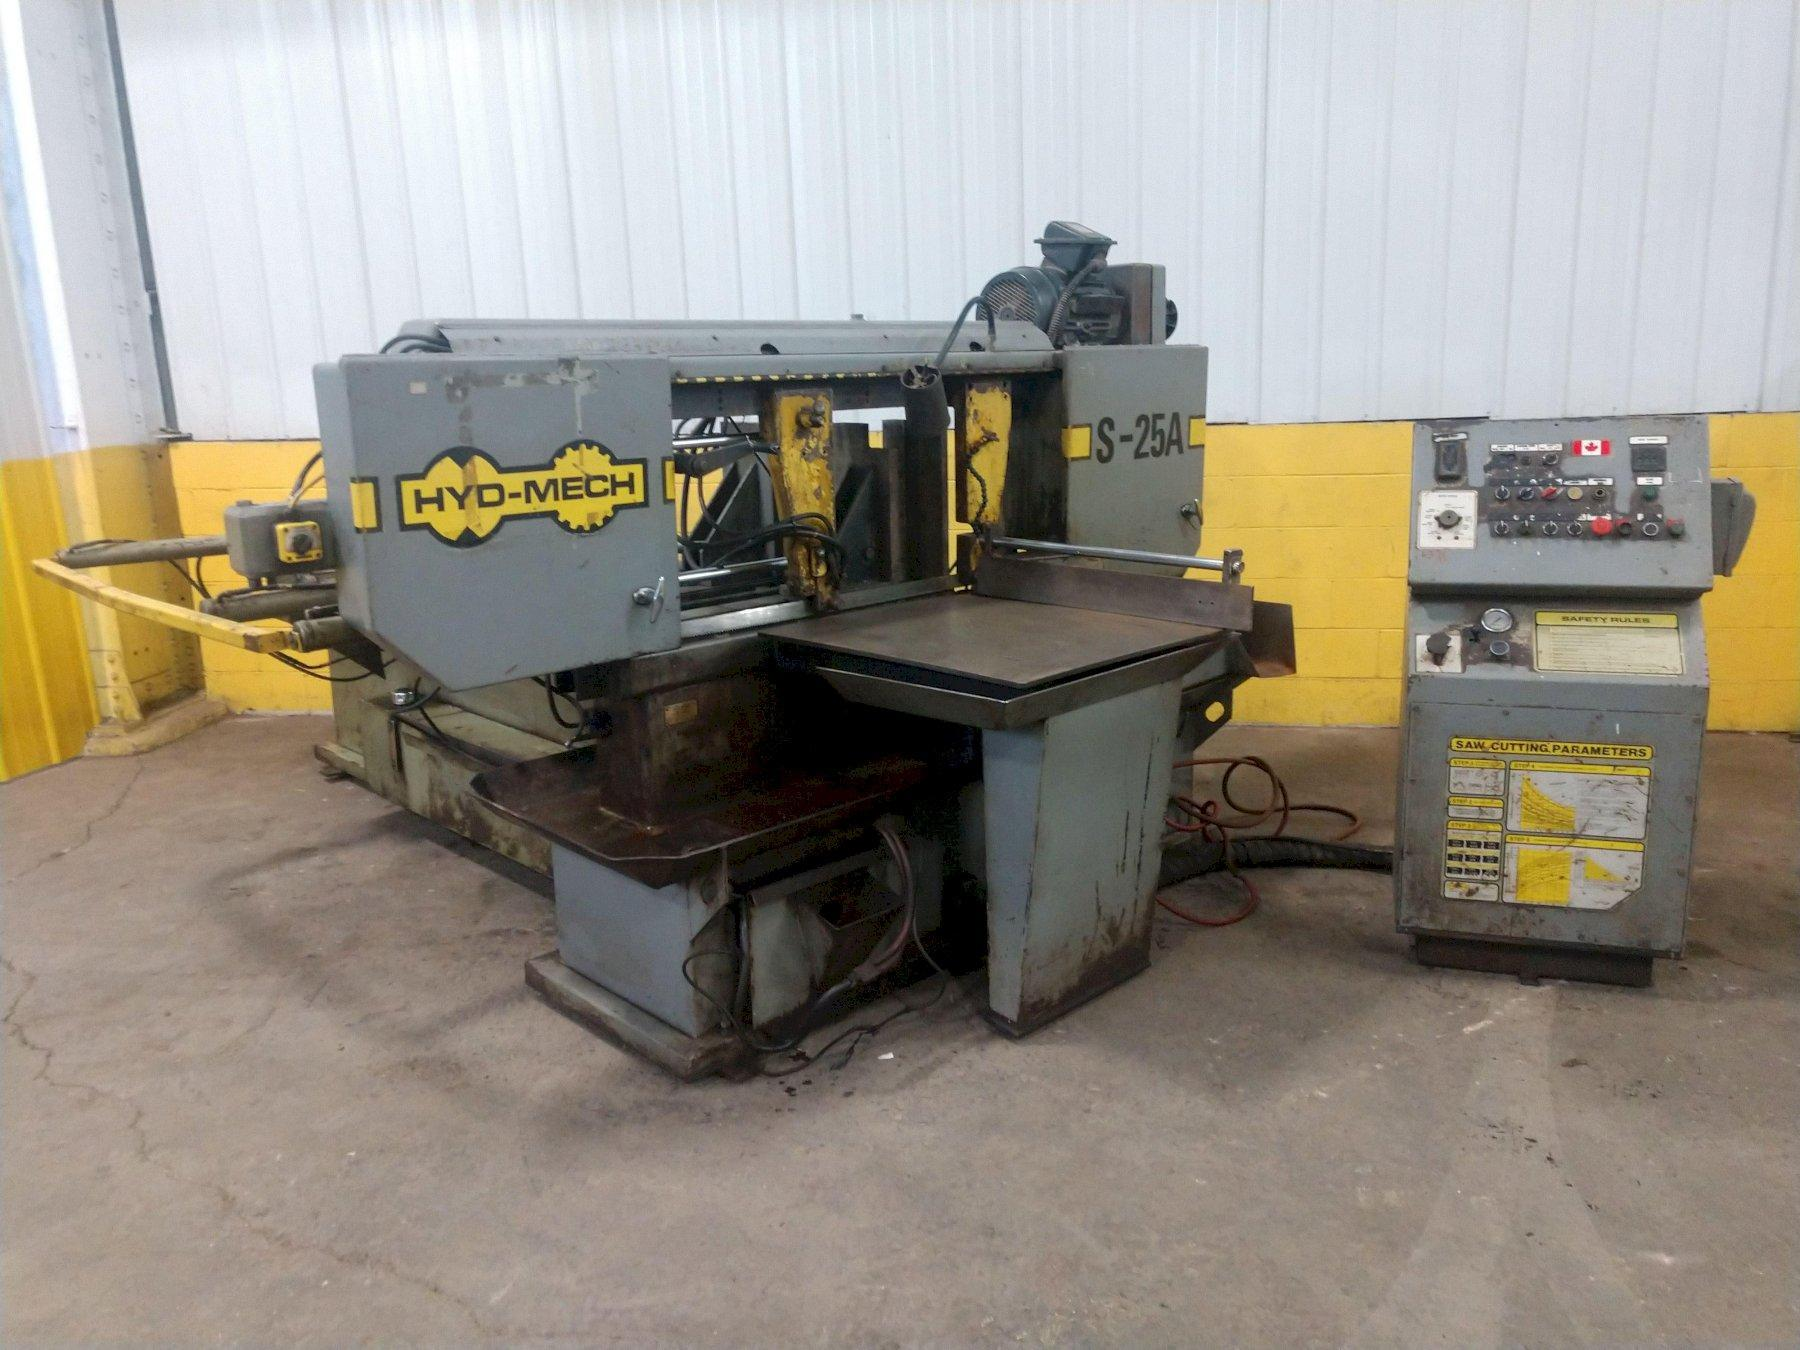 """18"""" X 27"""" HYD-MECH MODEL S-25A AUTOMATIC HORIZONTAL MITRE SAW: STOCK #14155"""